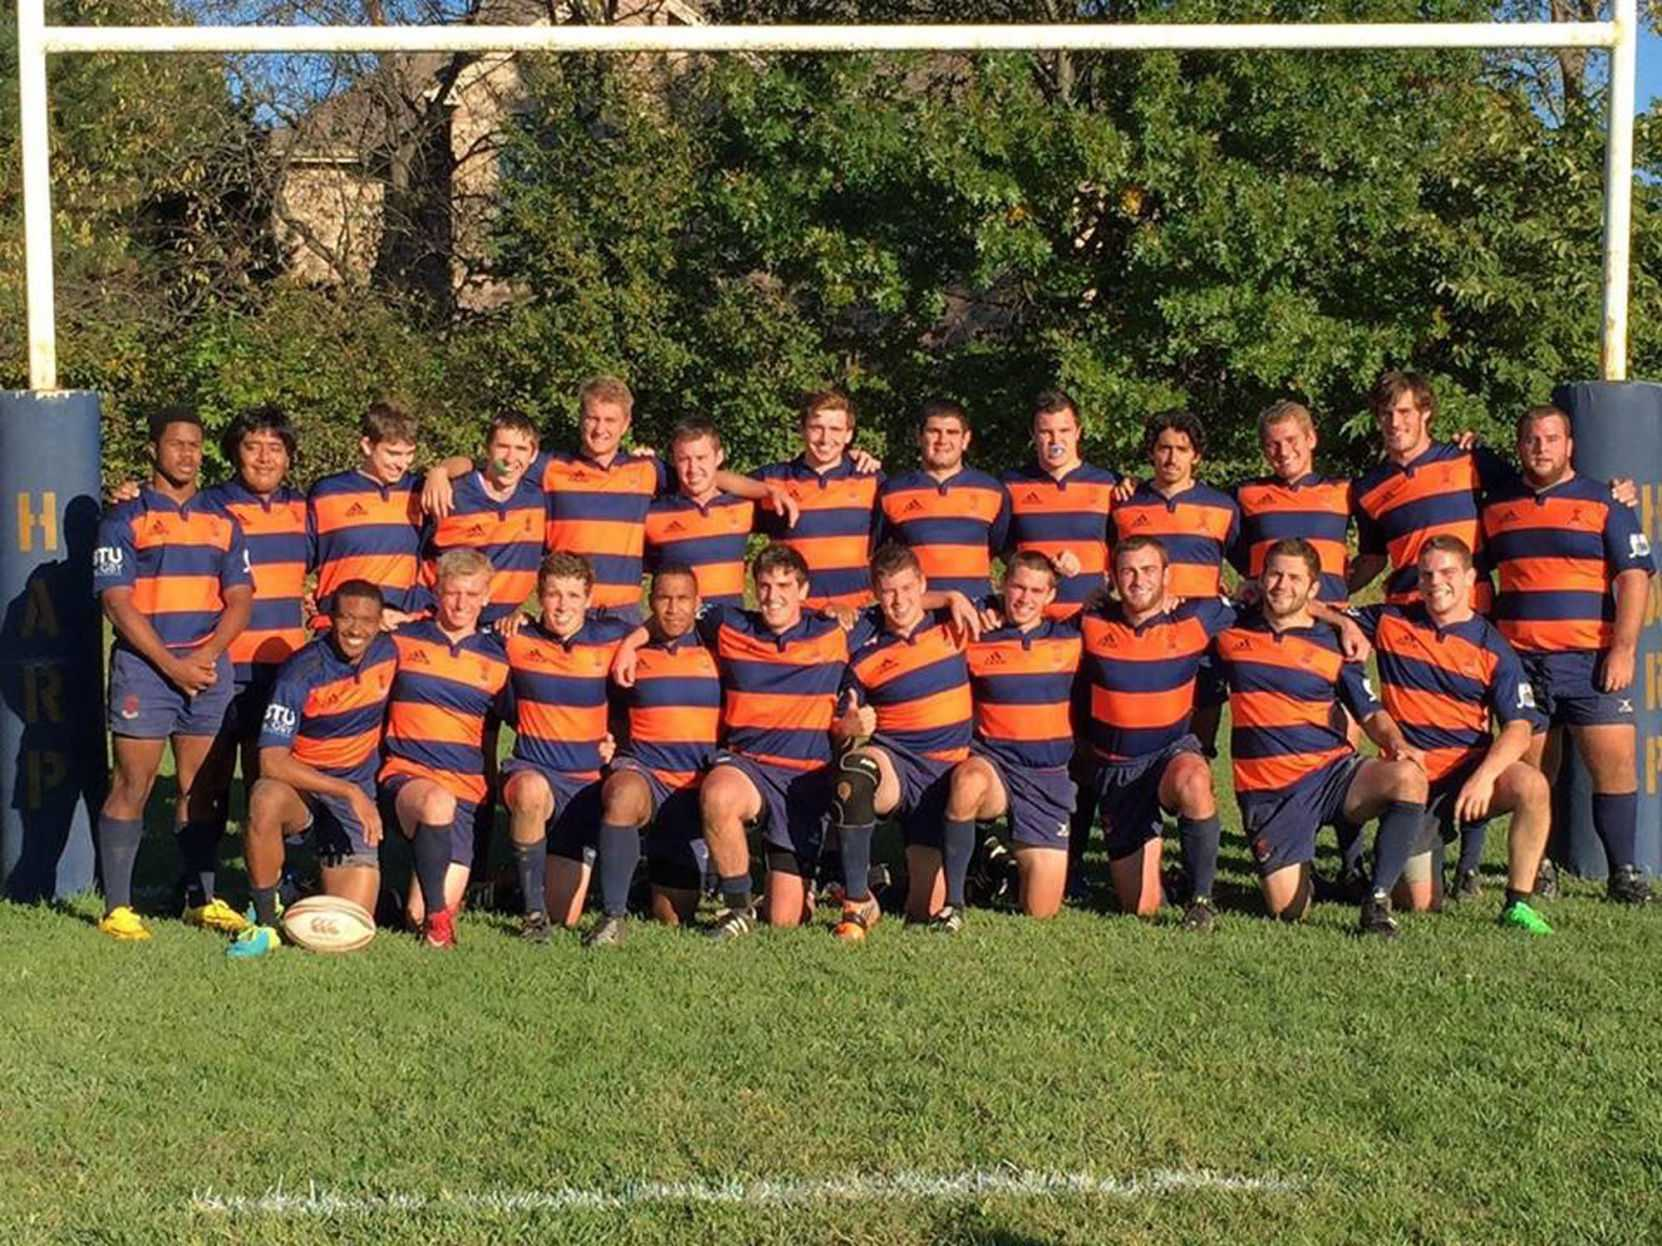 %3Cp%3EBy+competing+in+Division+1-A%2C+Illinois+men%E2%80%99s+rugby+club+team+promotes+the+growth+of+a+foreign+sport+on+campus.%3C%2Fp%3E